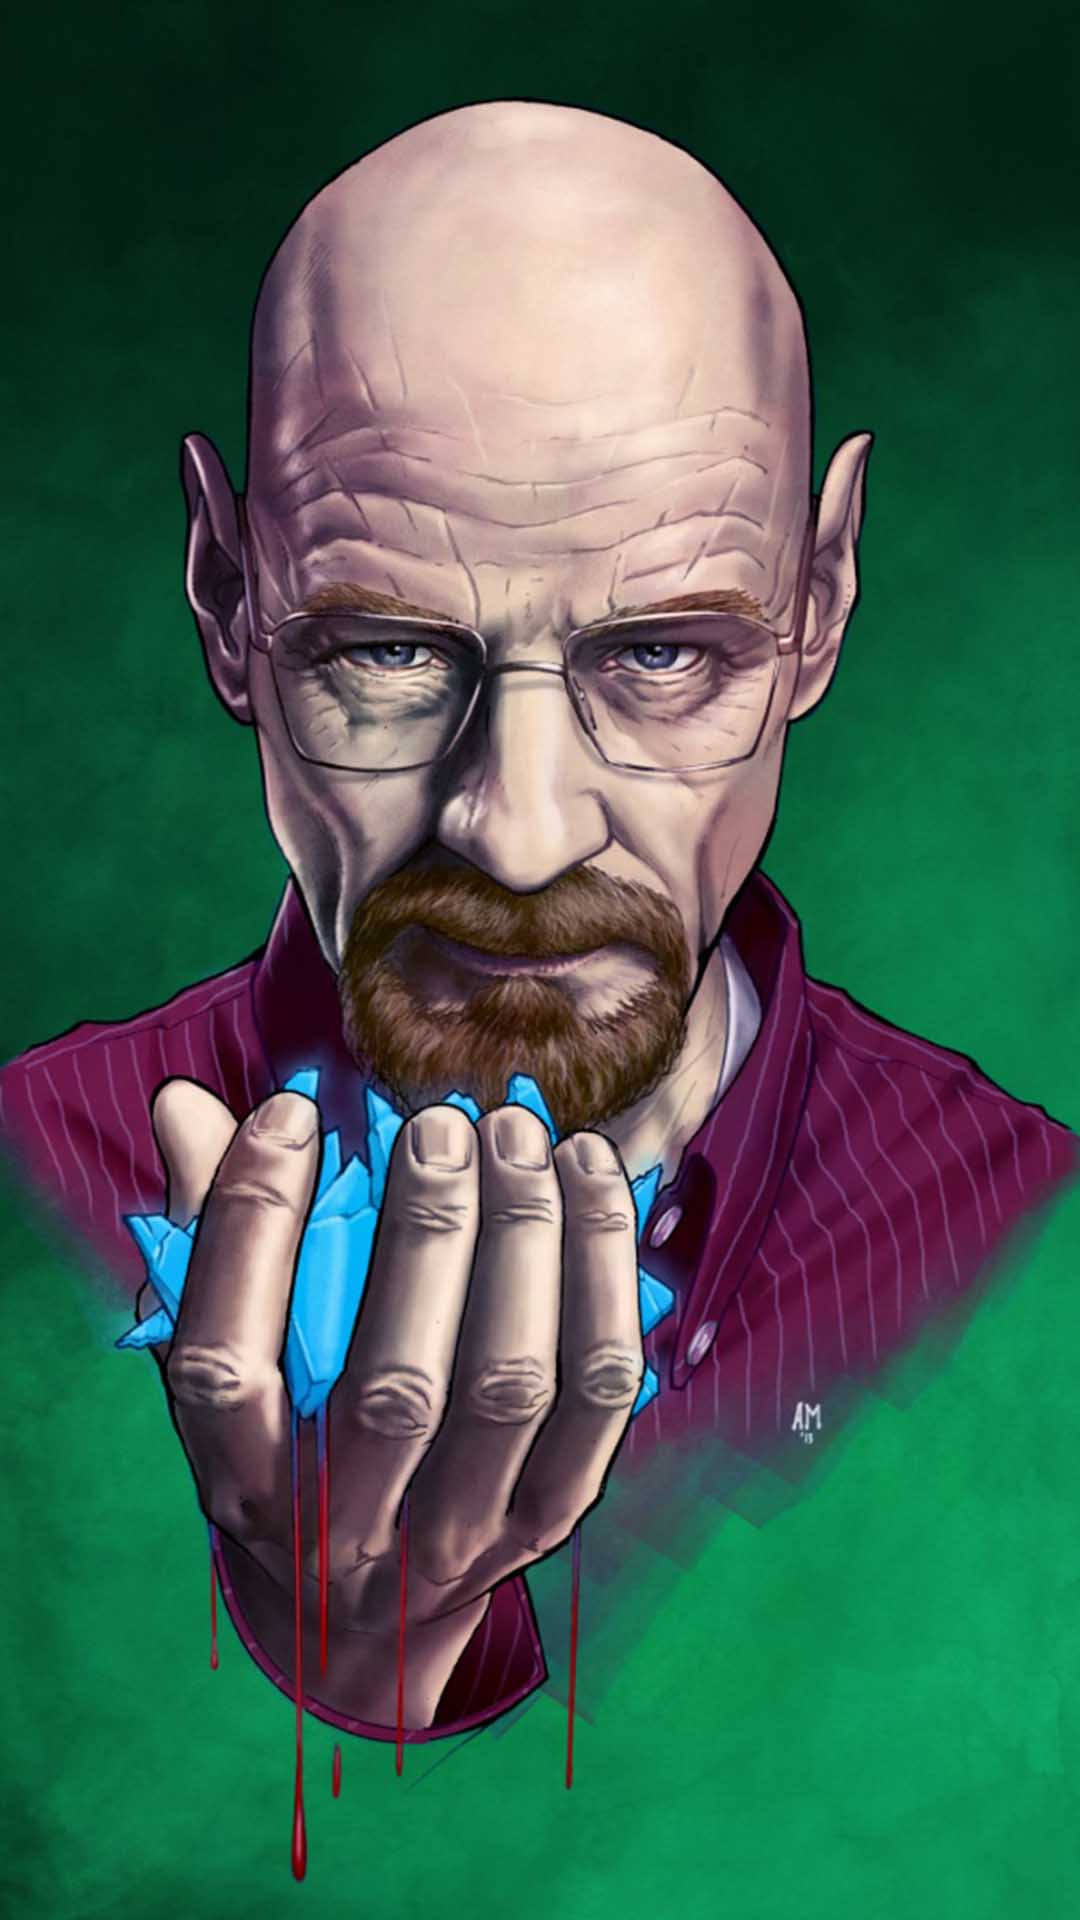 iPhone wallpaper breaking bad 1 3Wallpapers : notre sélection de fonds d'écran du 11/04/2018